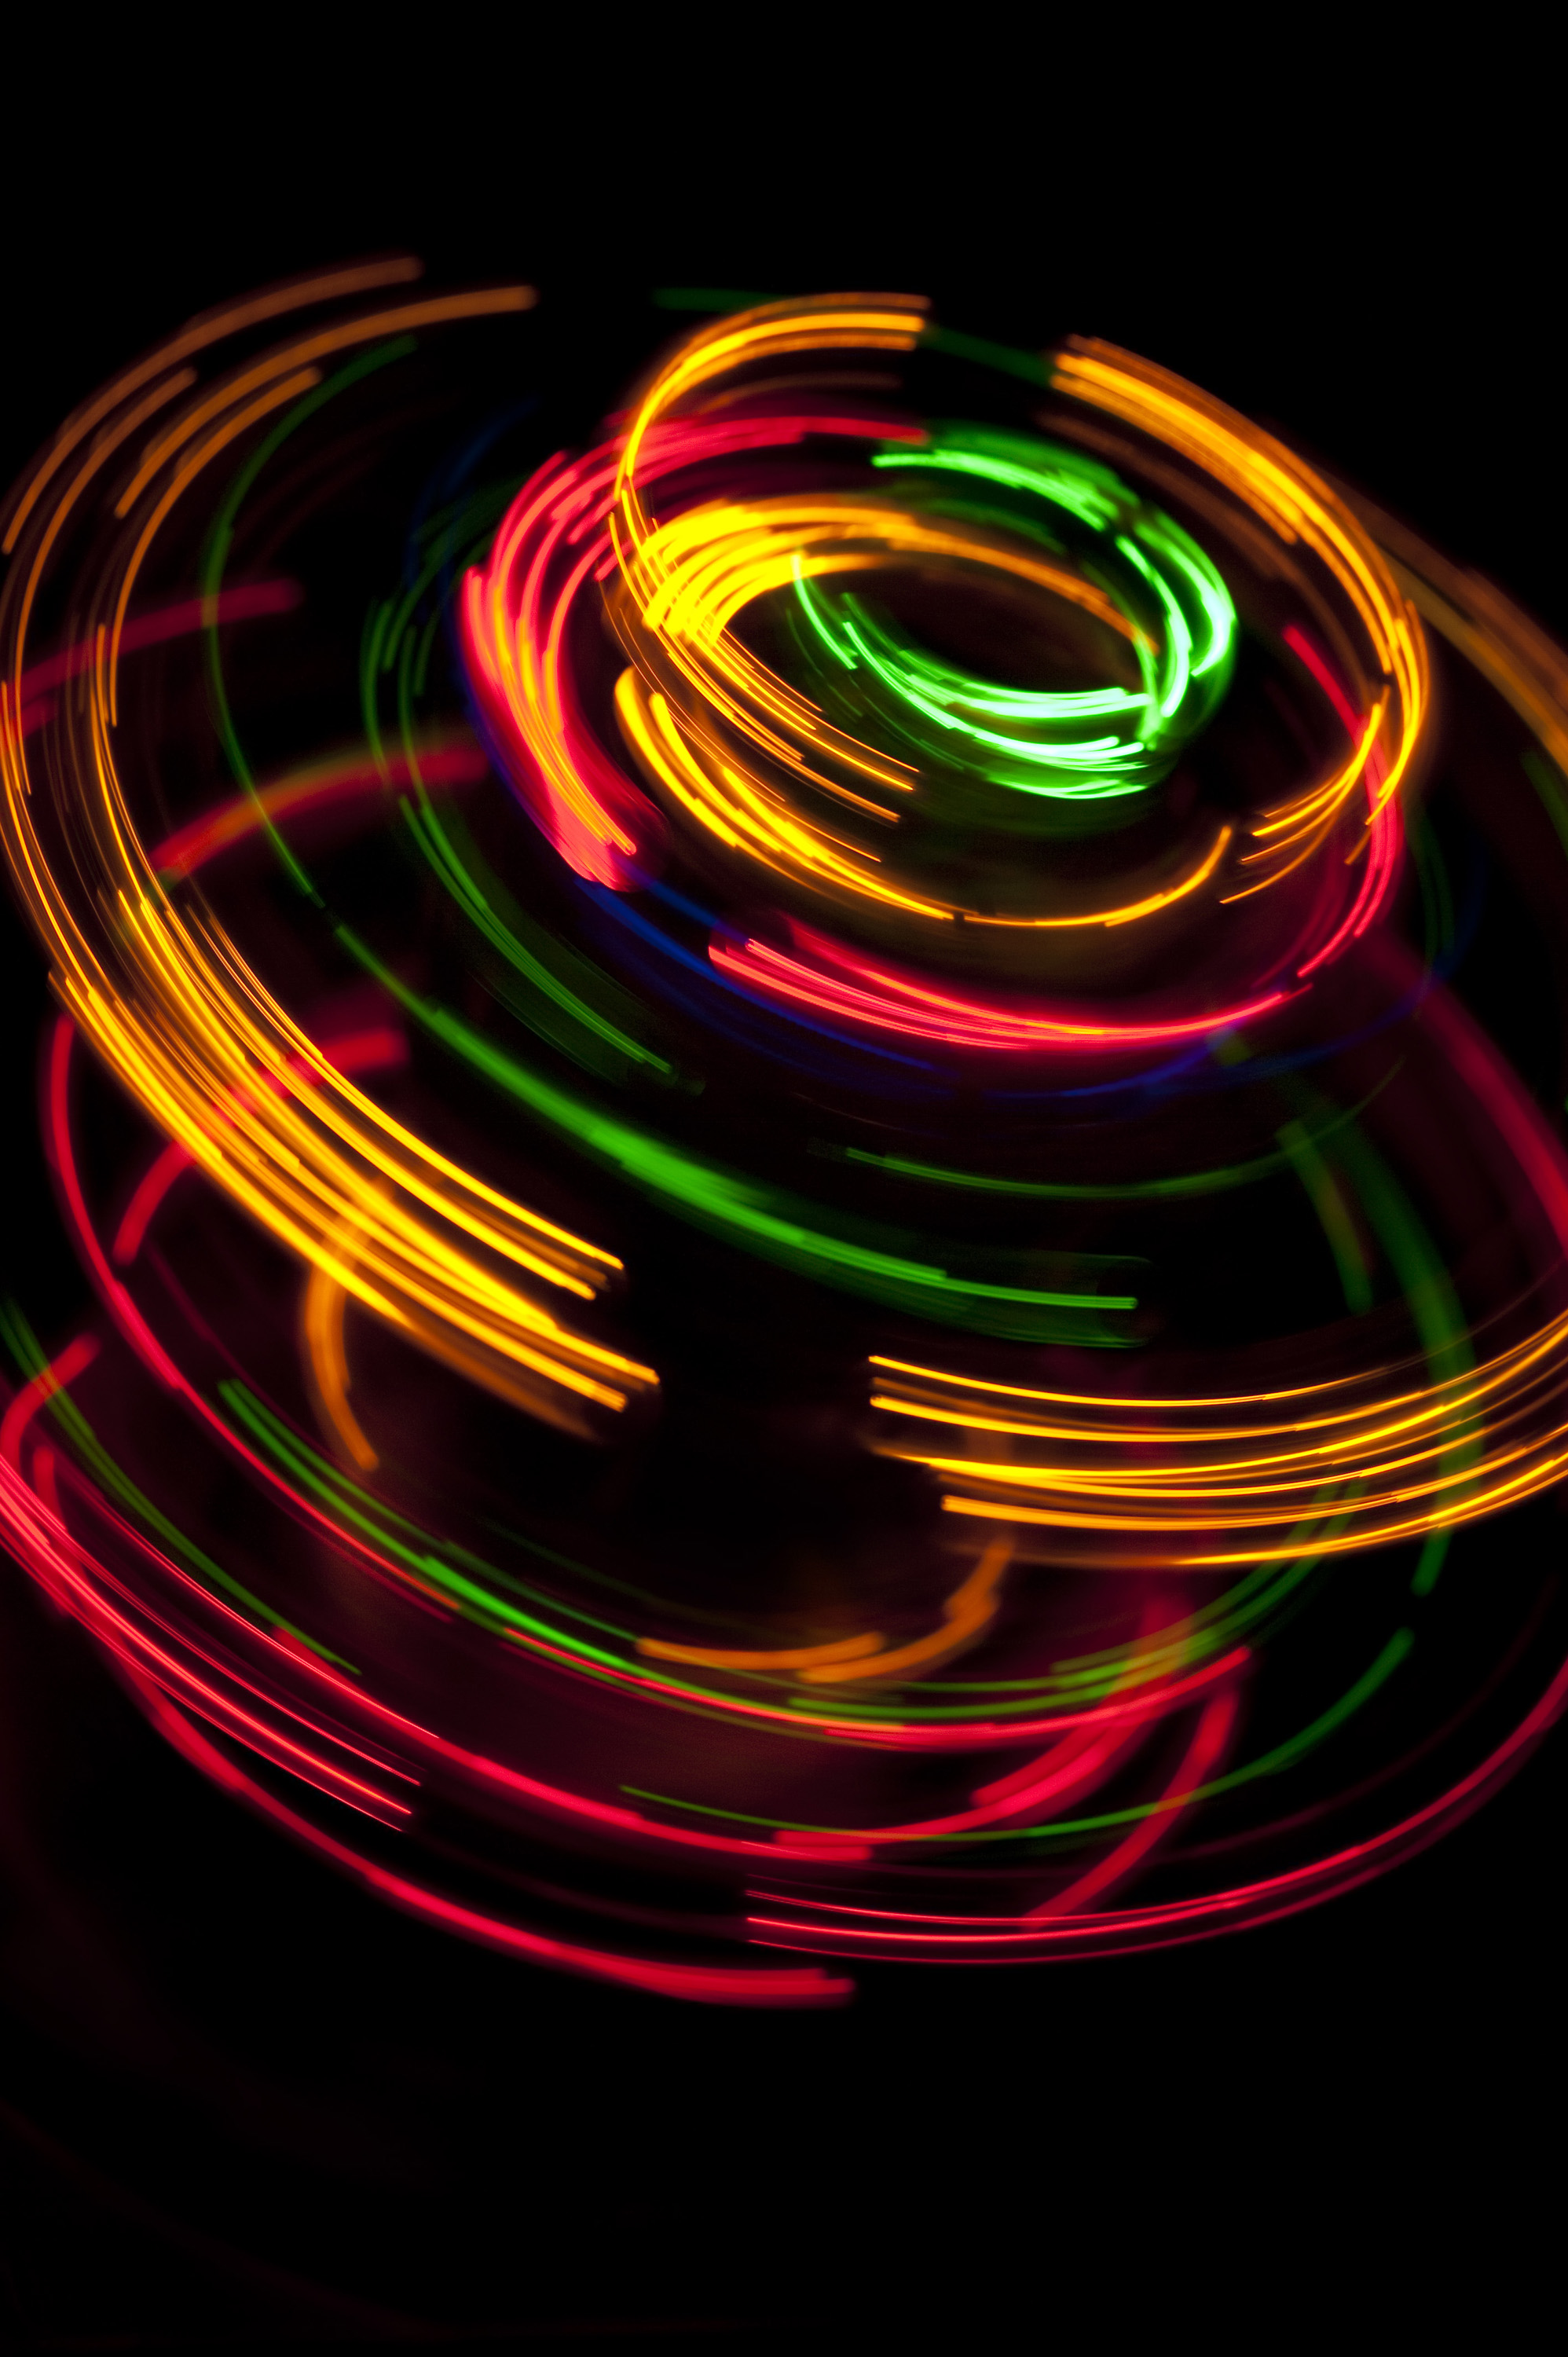 Colorful Series Of Overlapping Curved Lines Light Glowing Against A Black Background